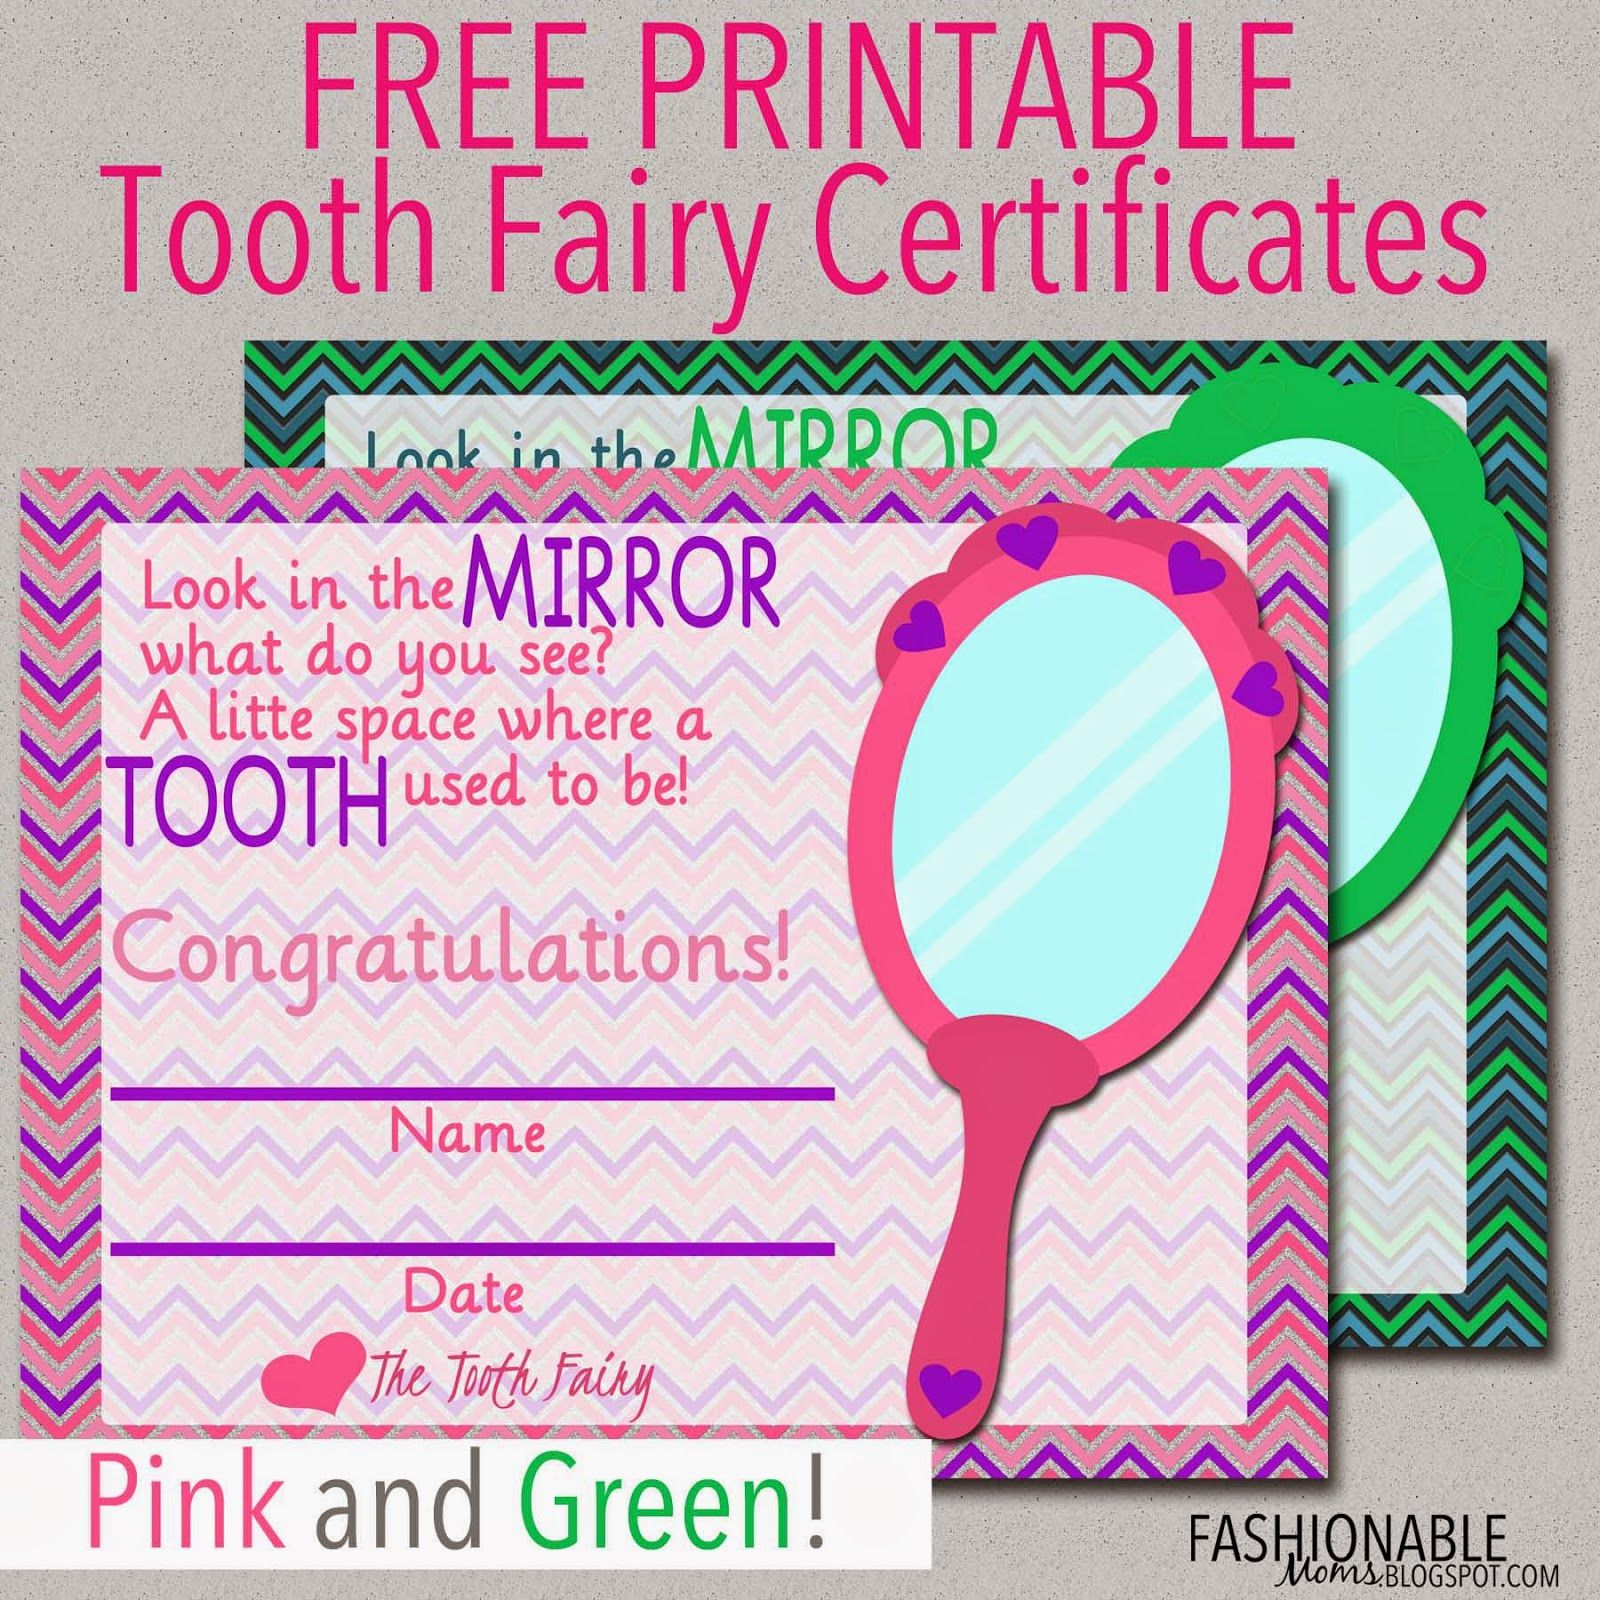 Free printable tooth fairy certificates kids pinterest tooth free printable tooth fairy certificates yelopaper Choice Image